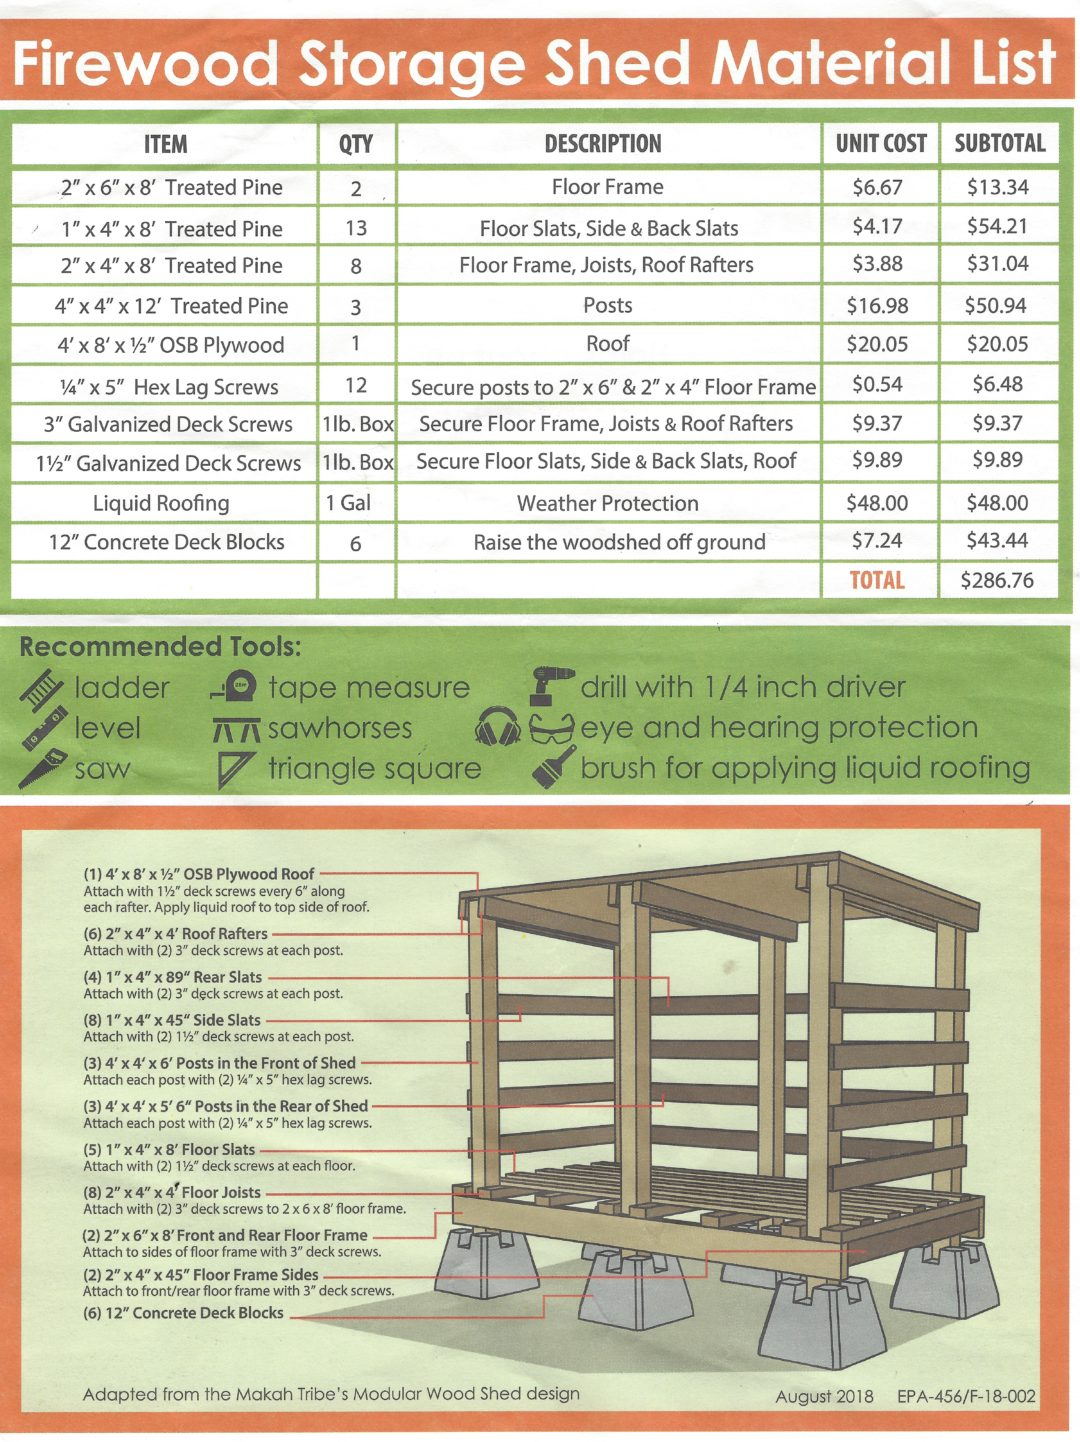 Firewood Storage Shed Materials List